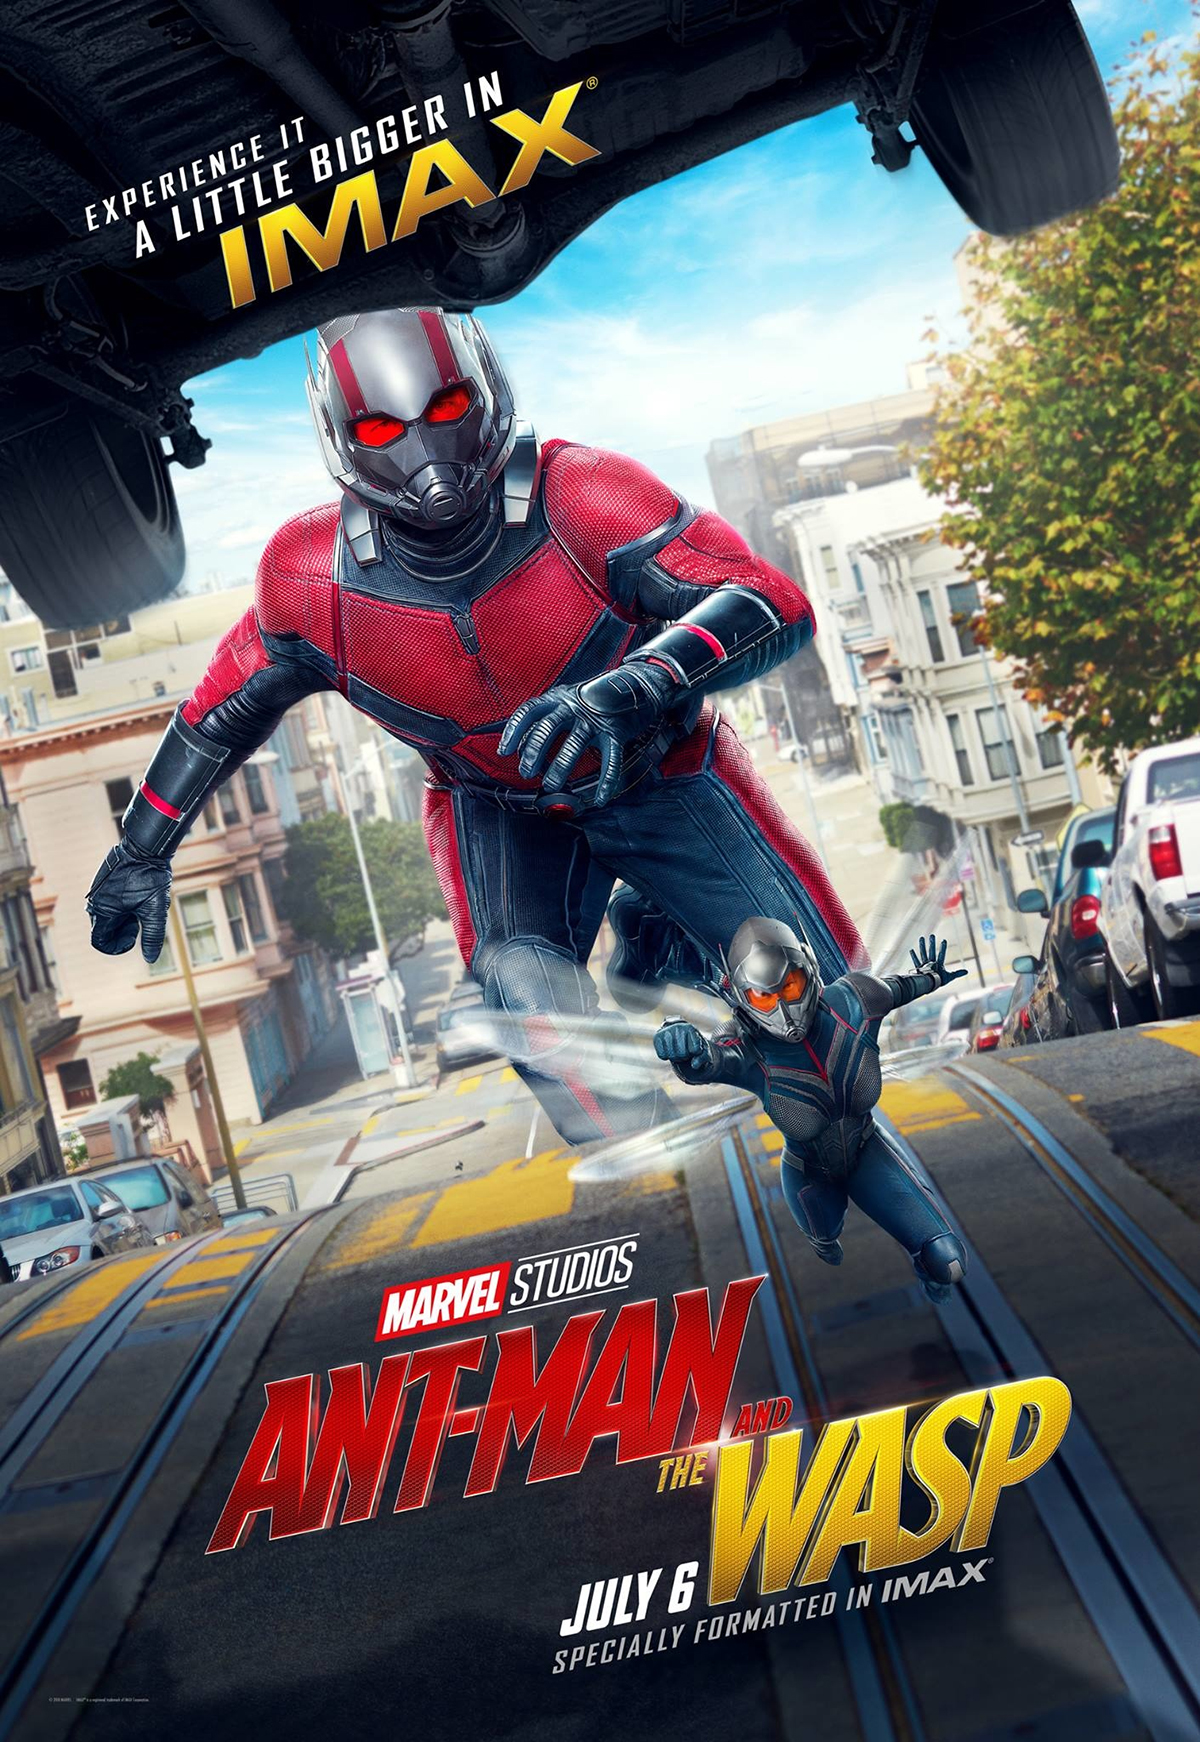 Download Ant-Man and the Wasp 2018 720p IMAX BluRay Dual Audio[Hindi BD5 1 Torrent